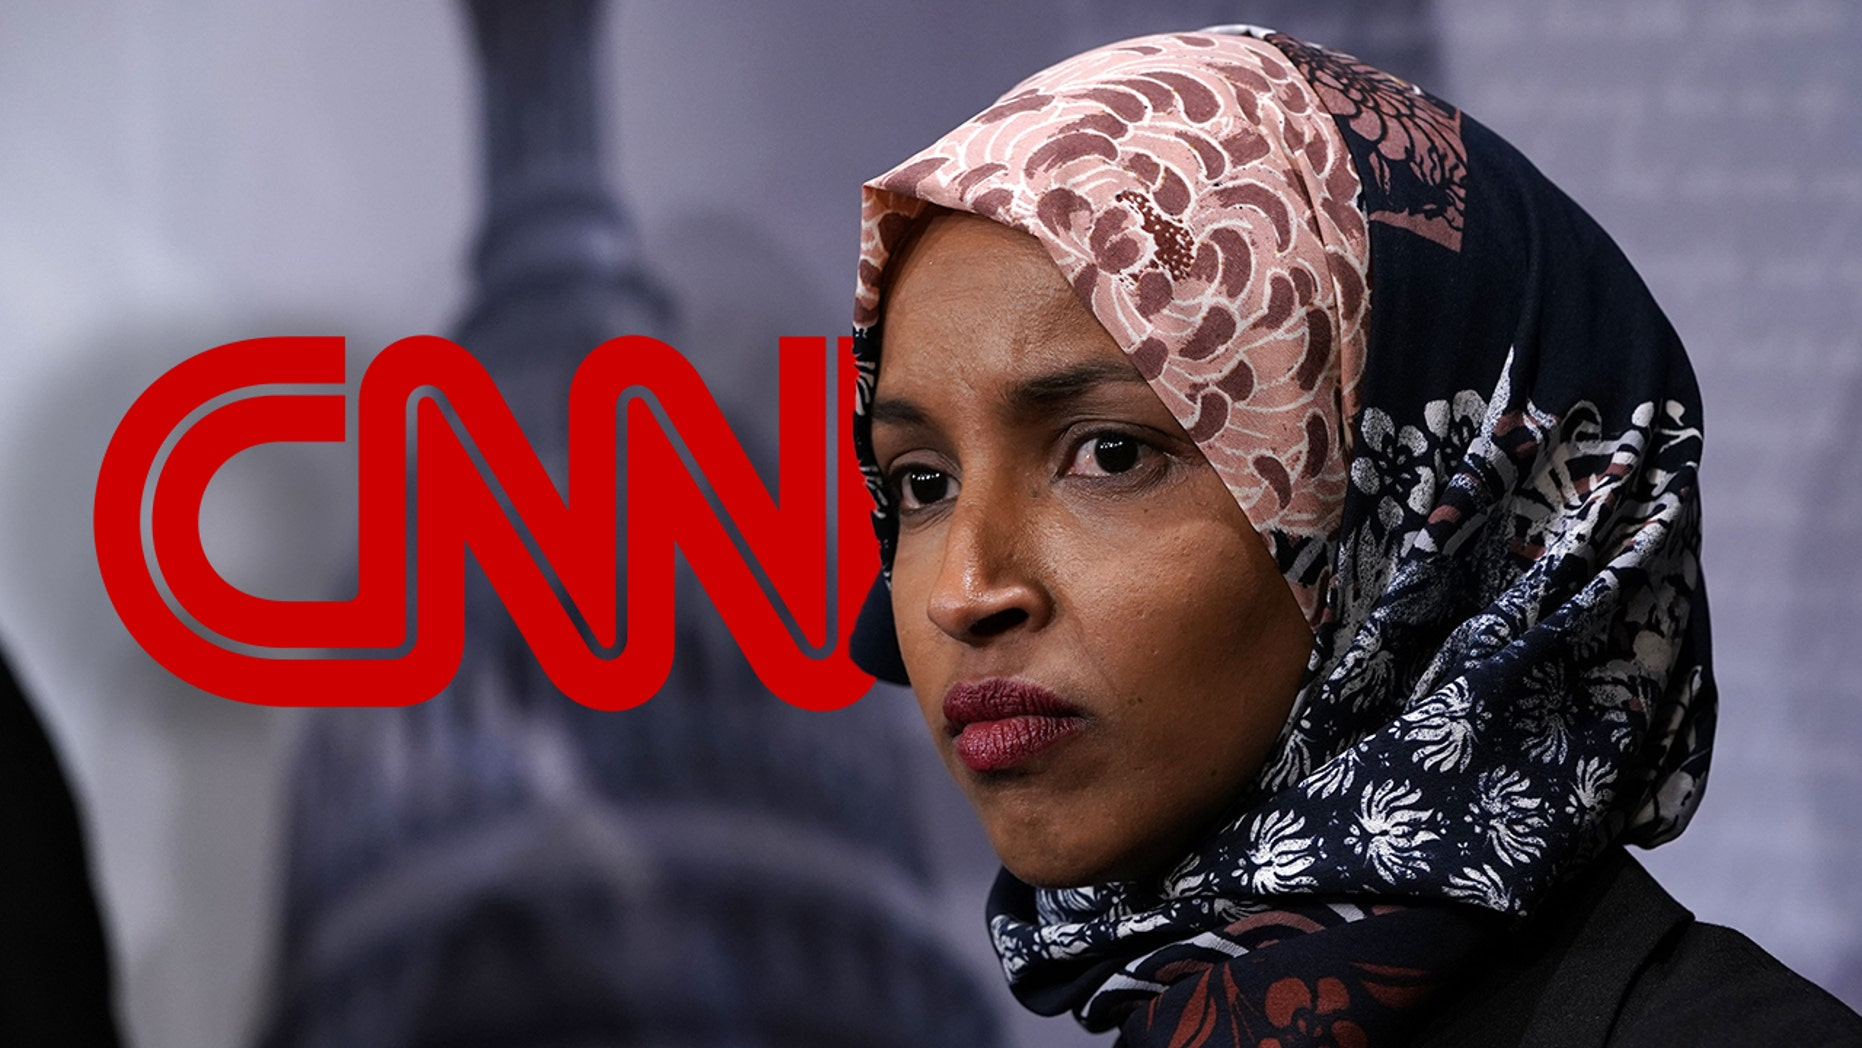 CNN's coverage of Rep. Ilhan Omar turned into criticism of President Trump from the network's biggest names.